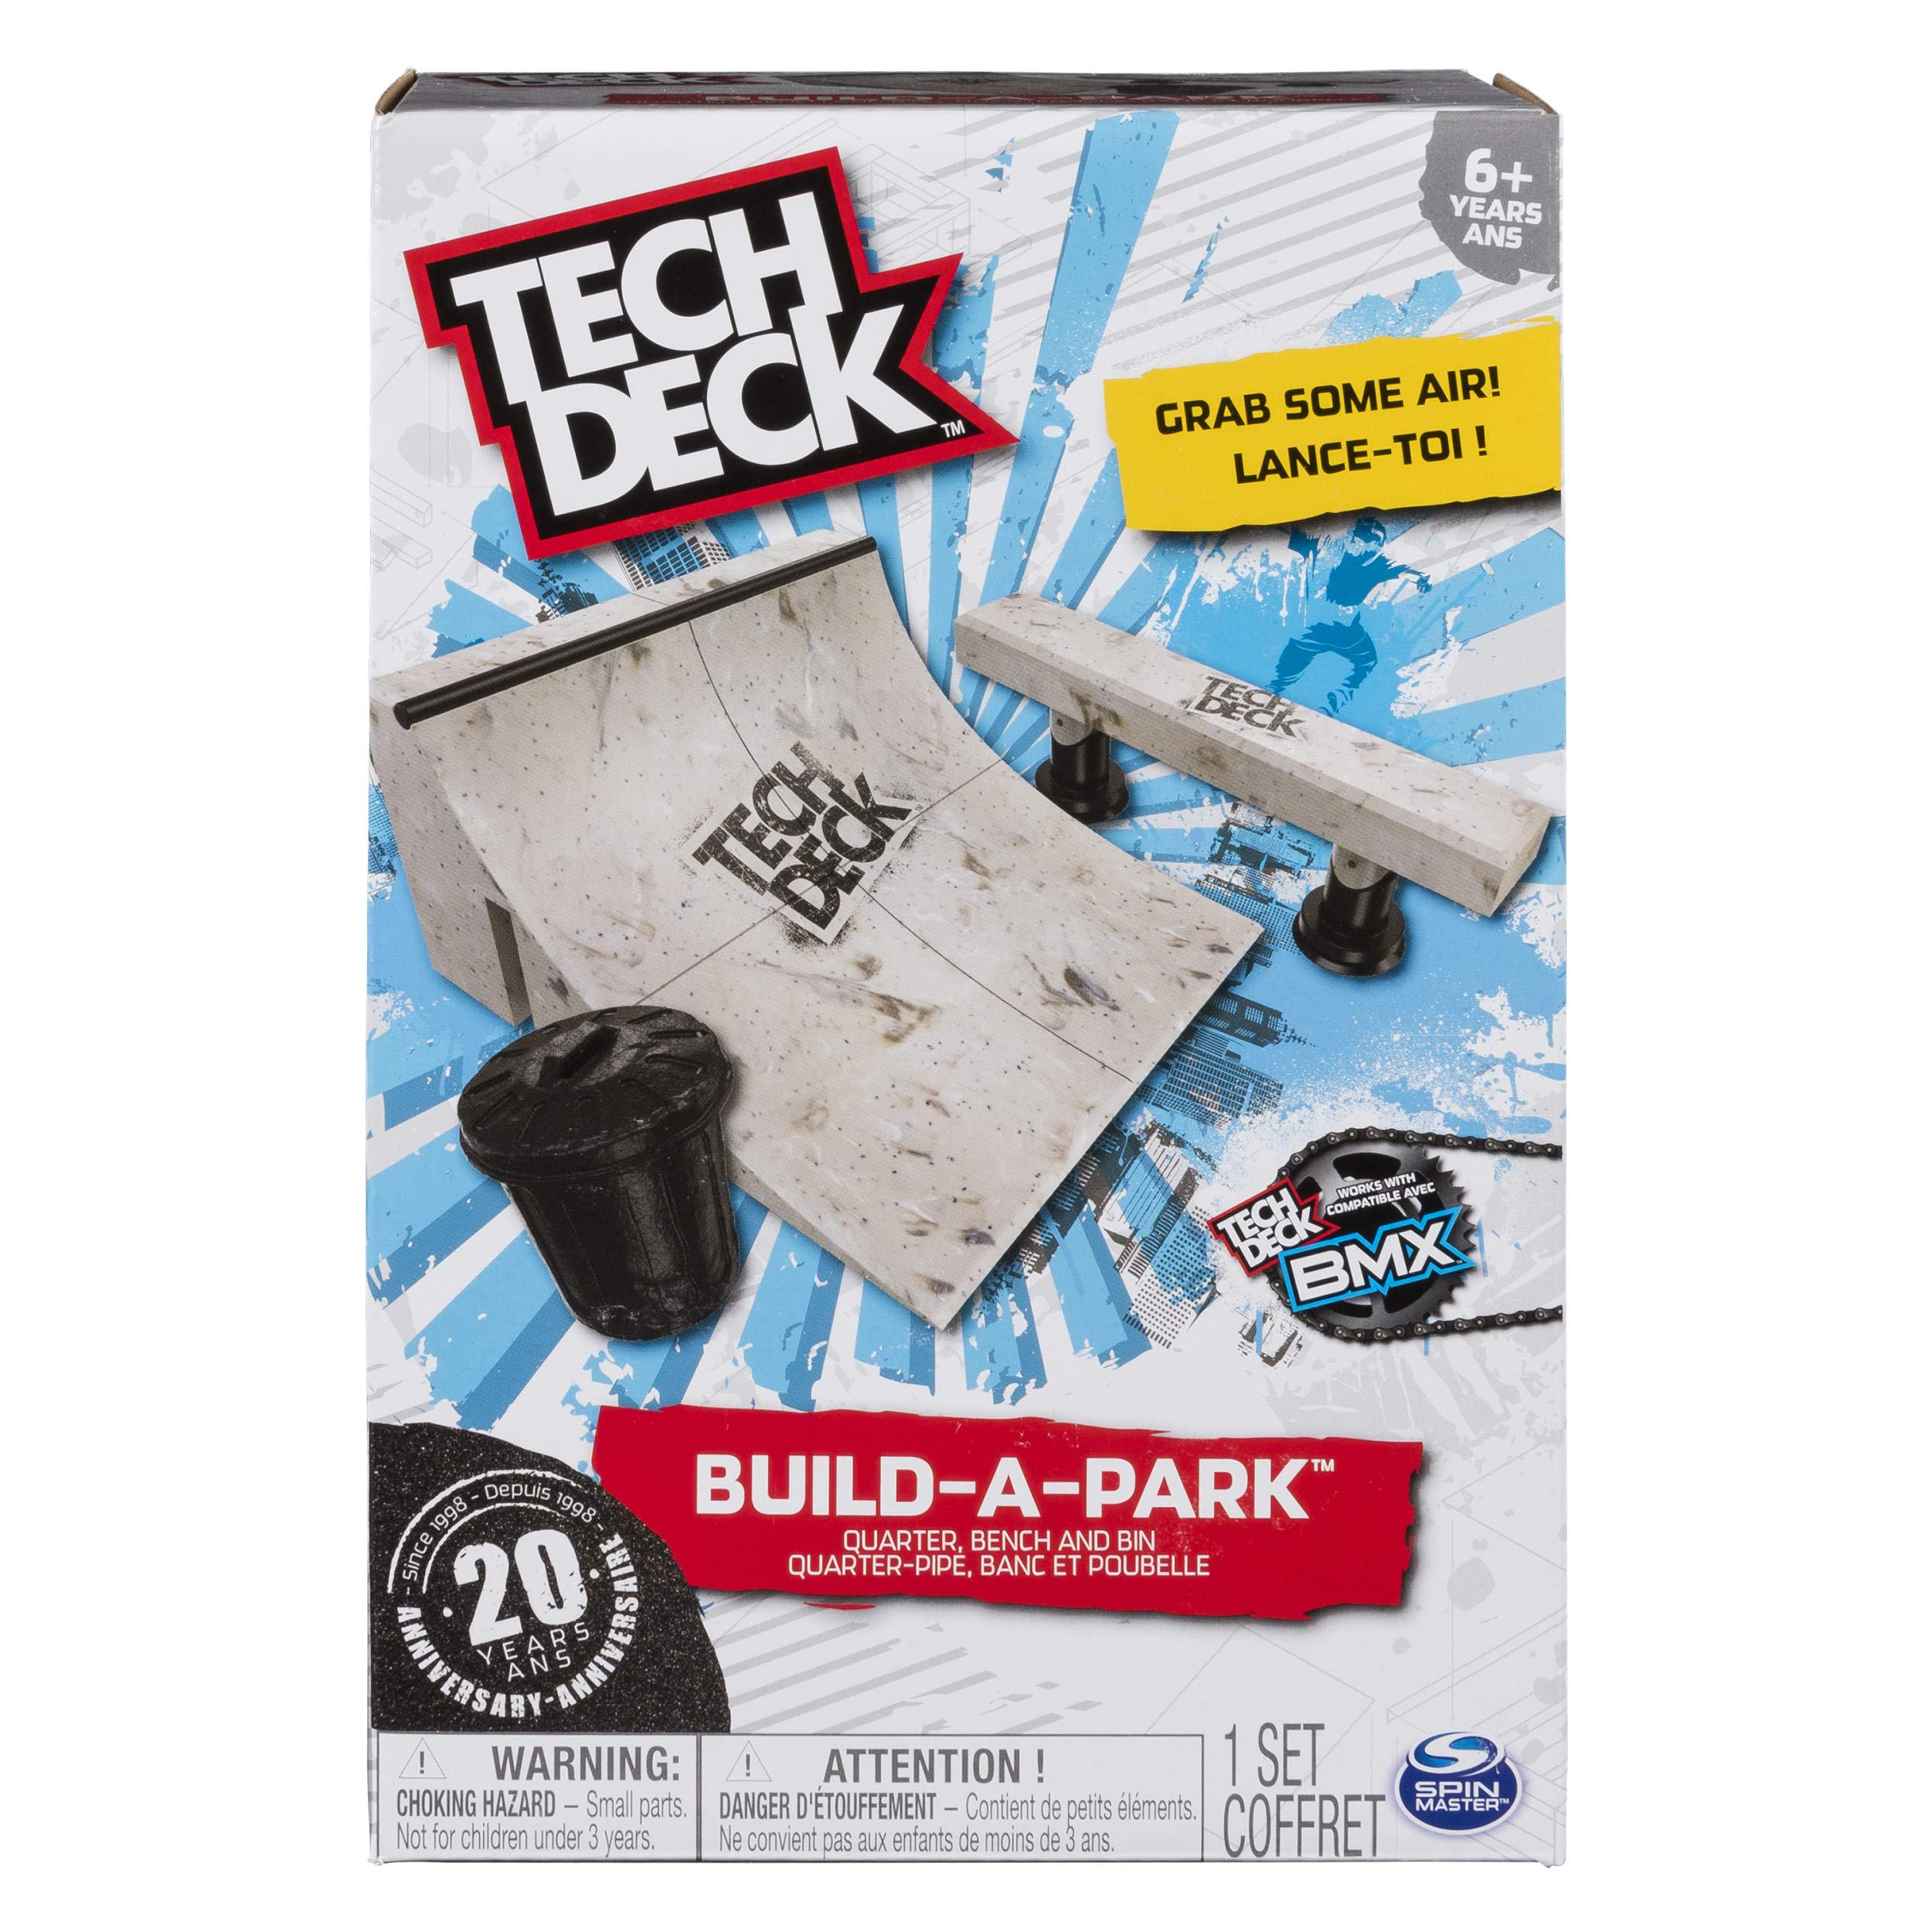 TECH DECK - Build-A-Park - Quarter, Bench, and Bin - Ramps Boards and Bikes